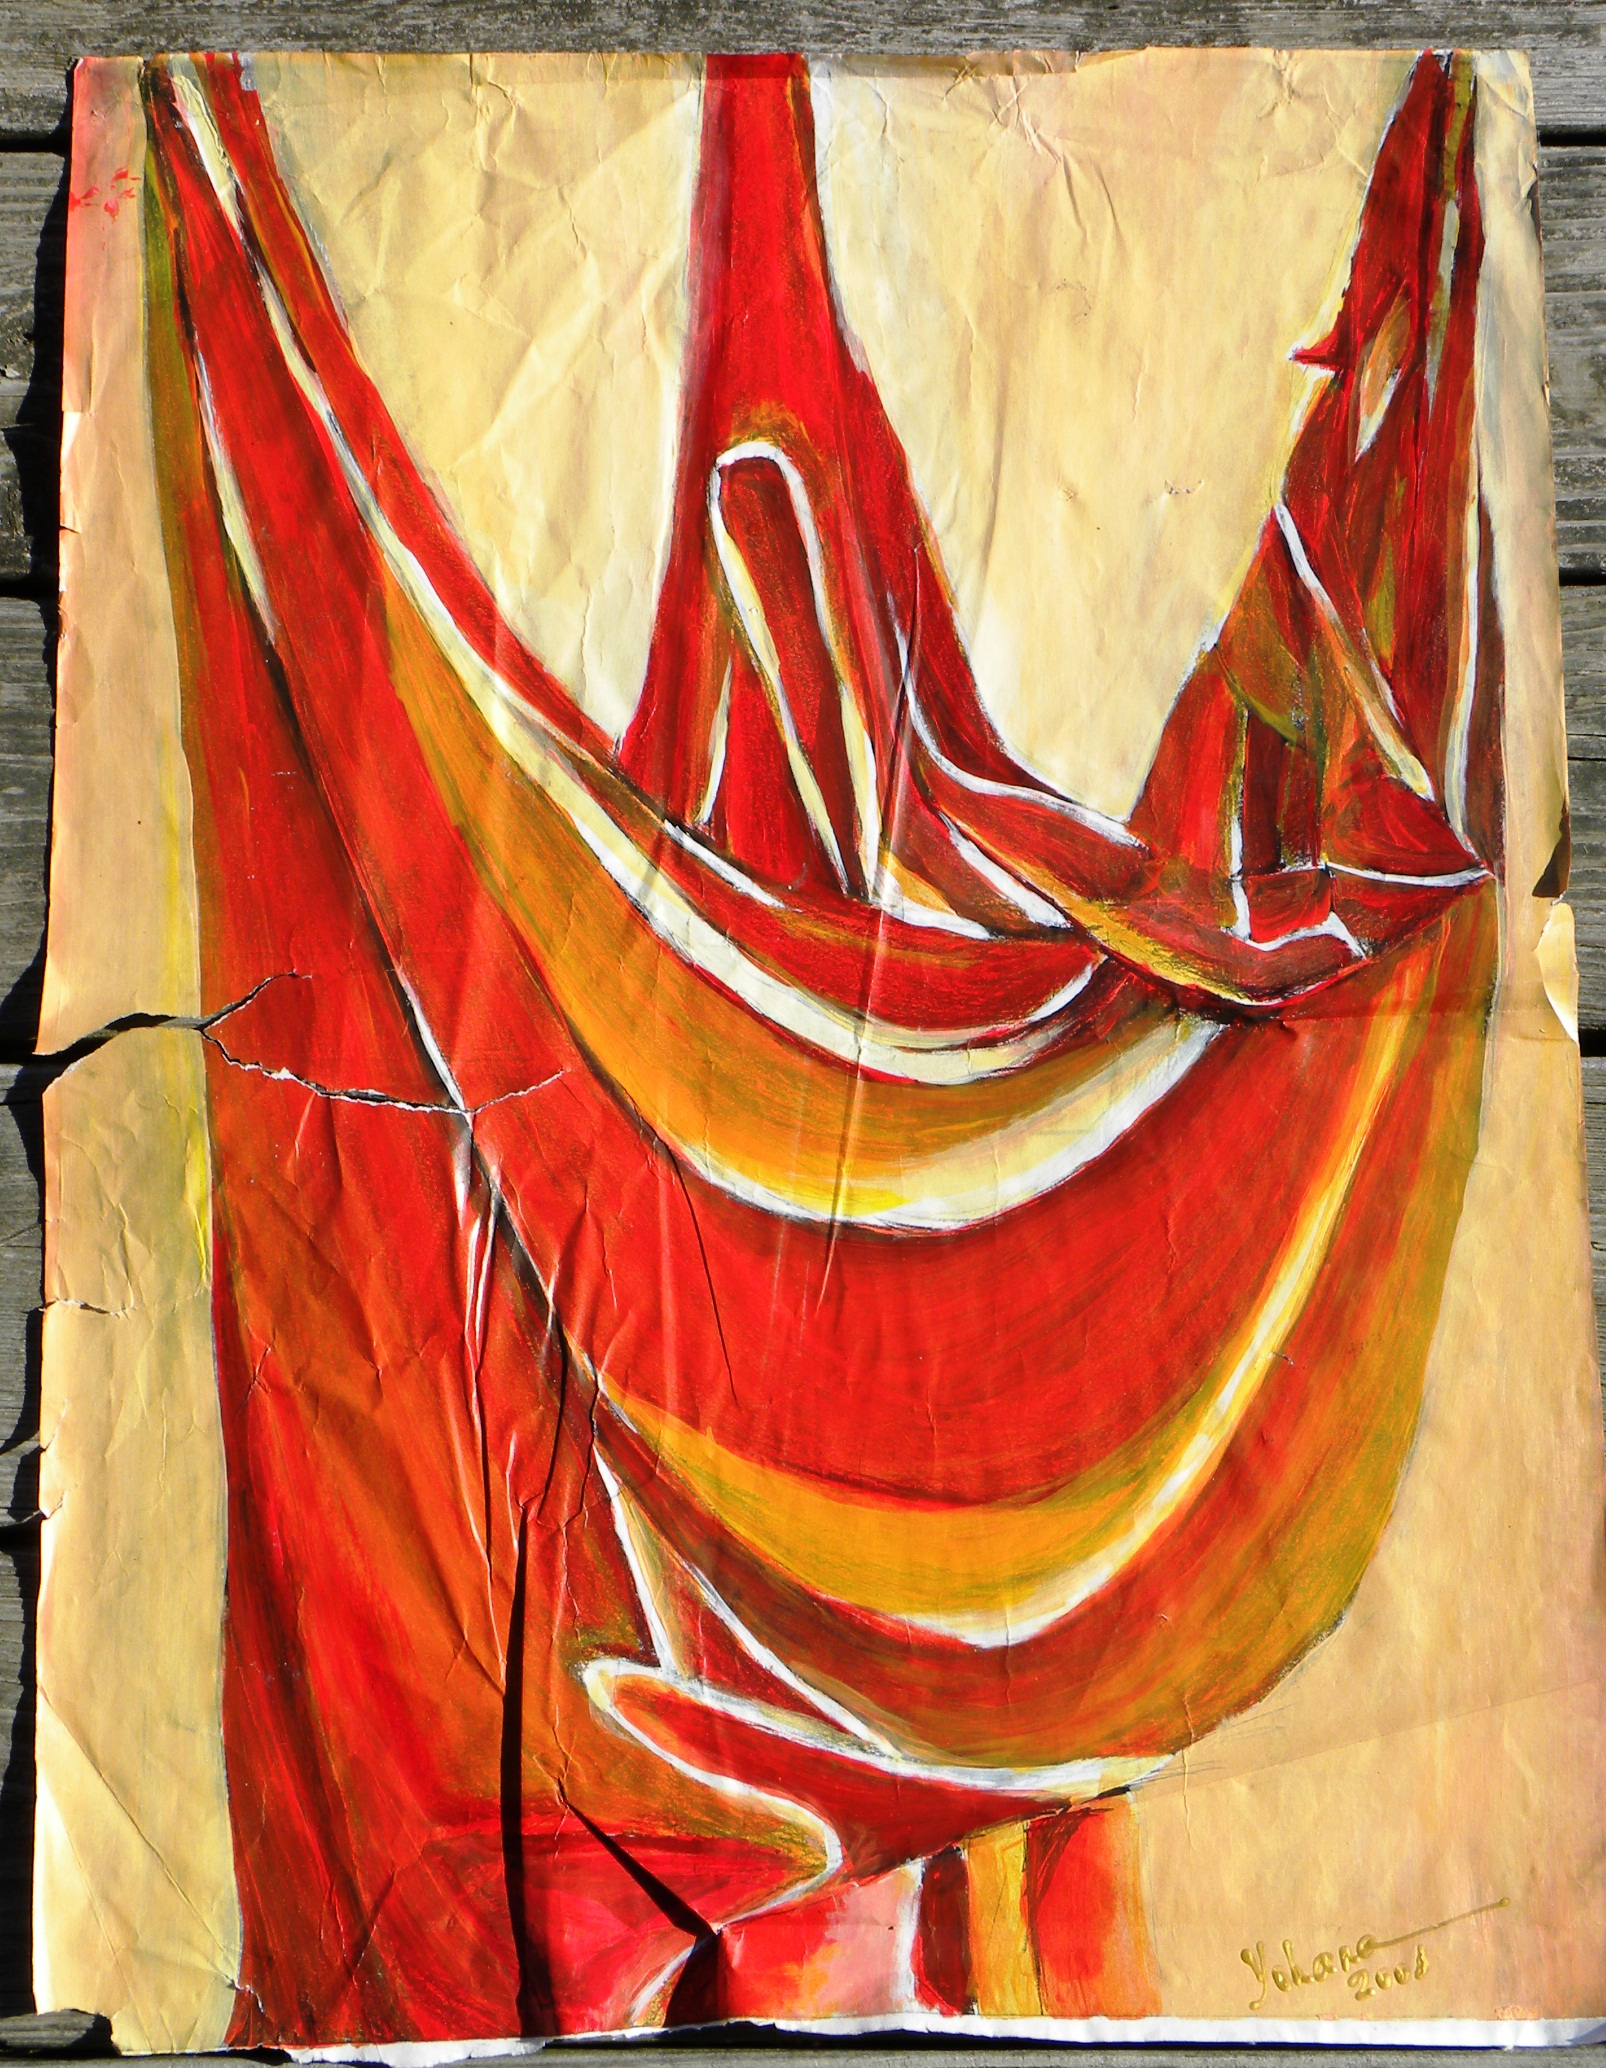 Sacred Cradle, 2001, acrylic on paper,25x36in